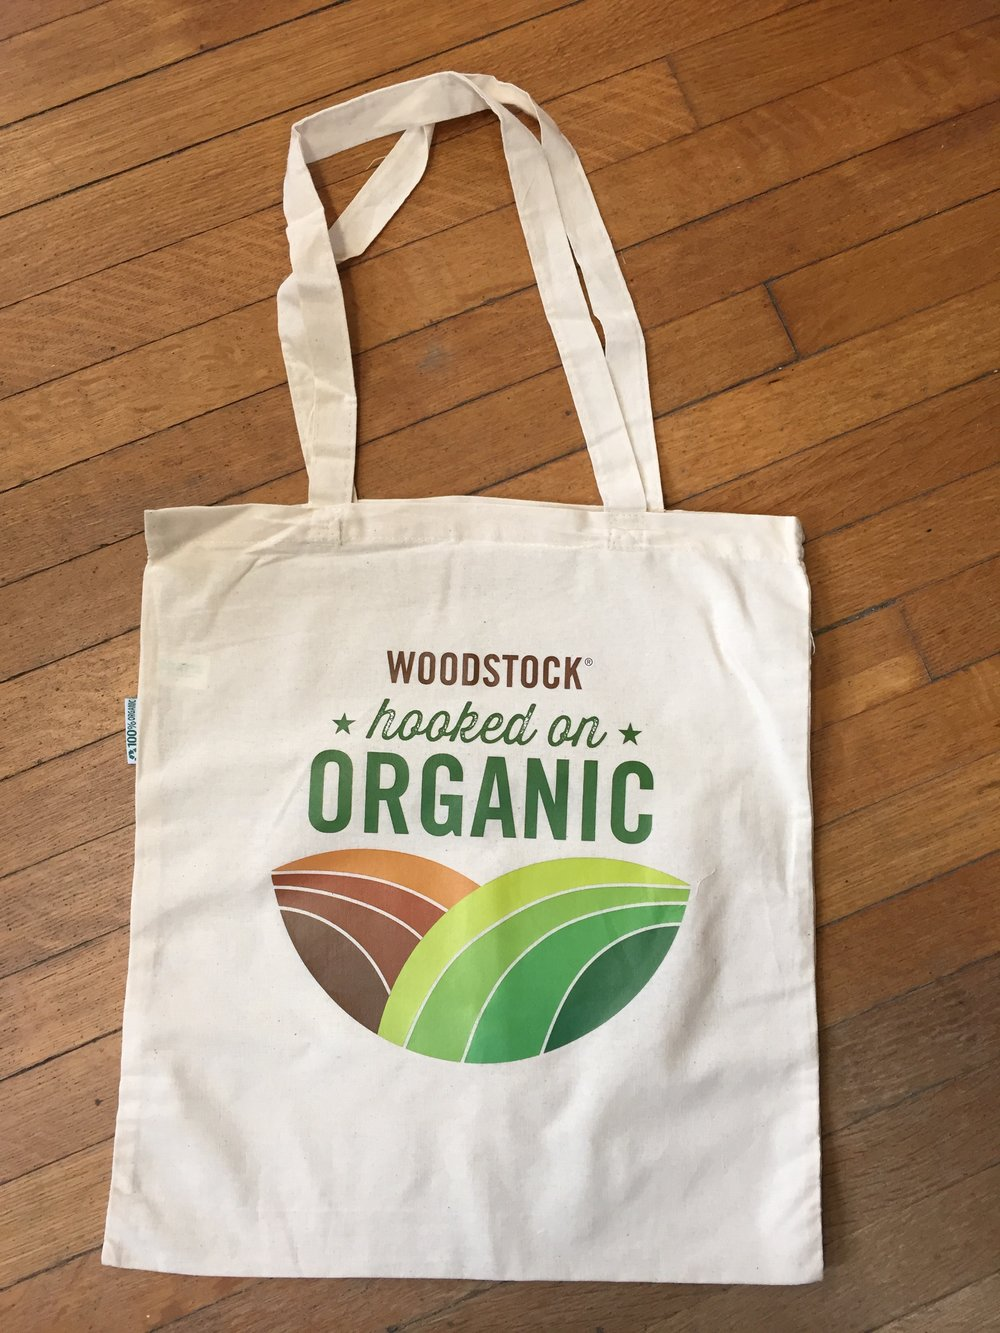 Hooked on Organics reusable tote